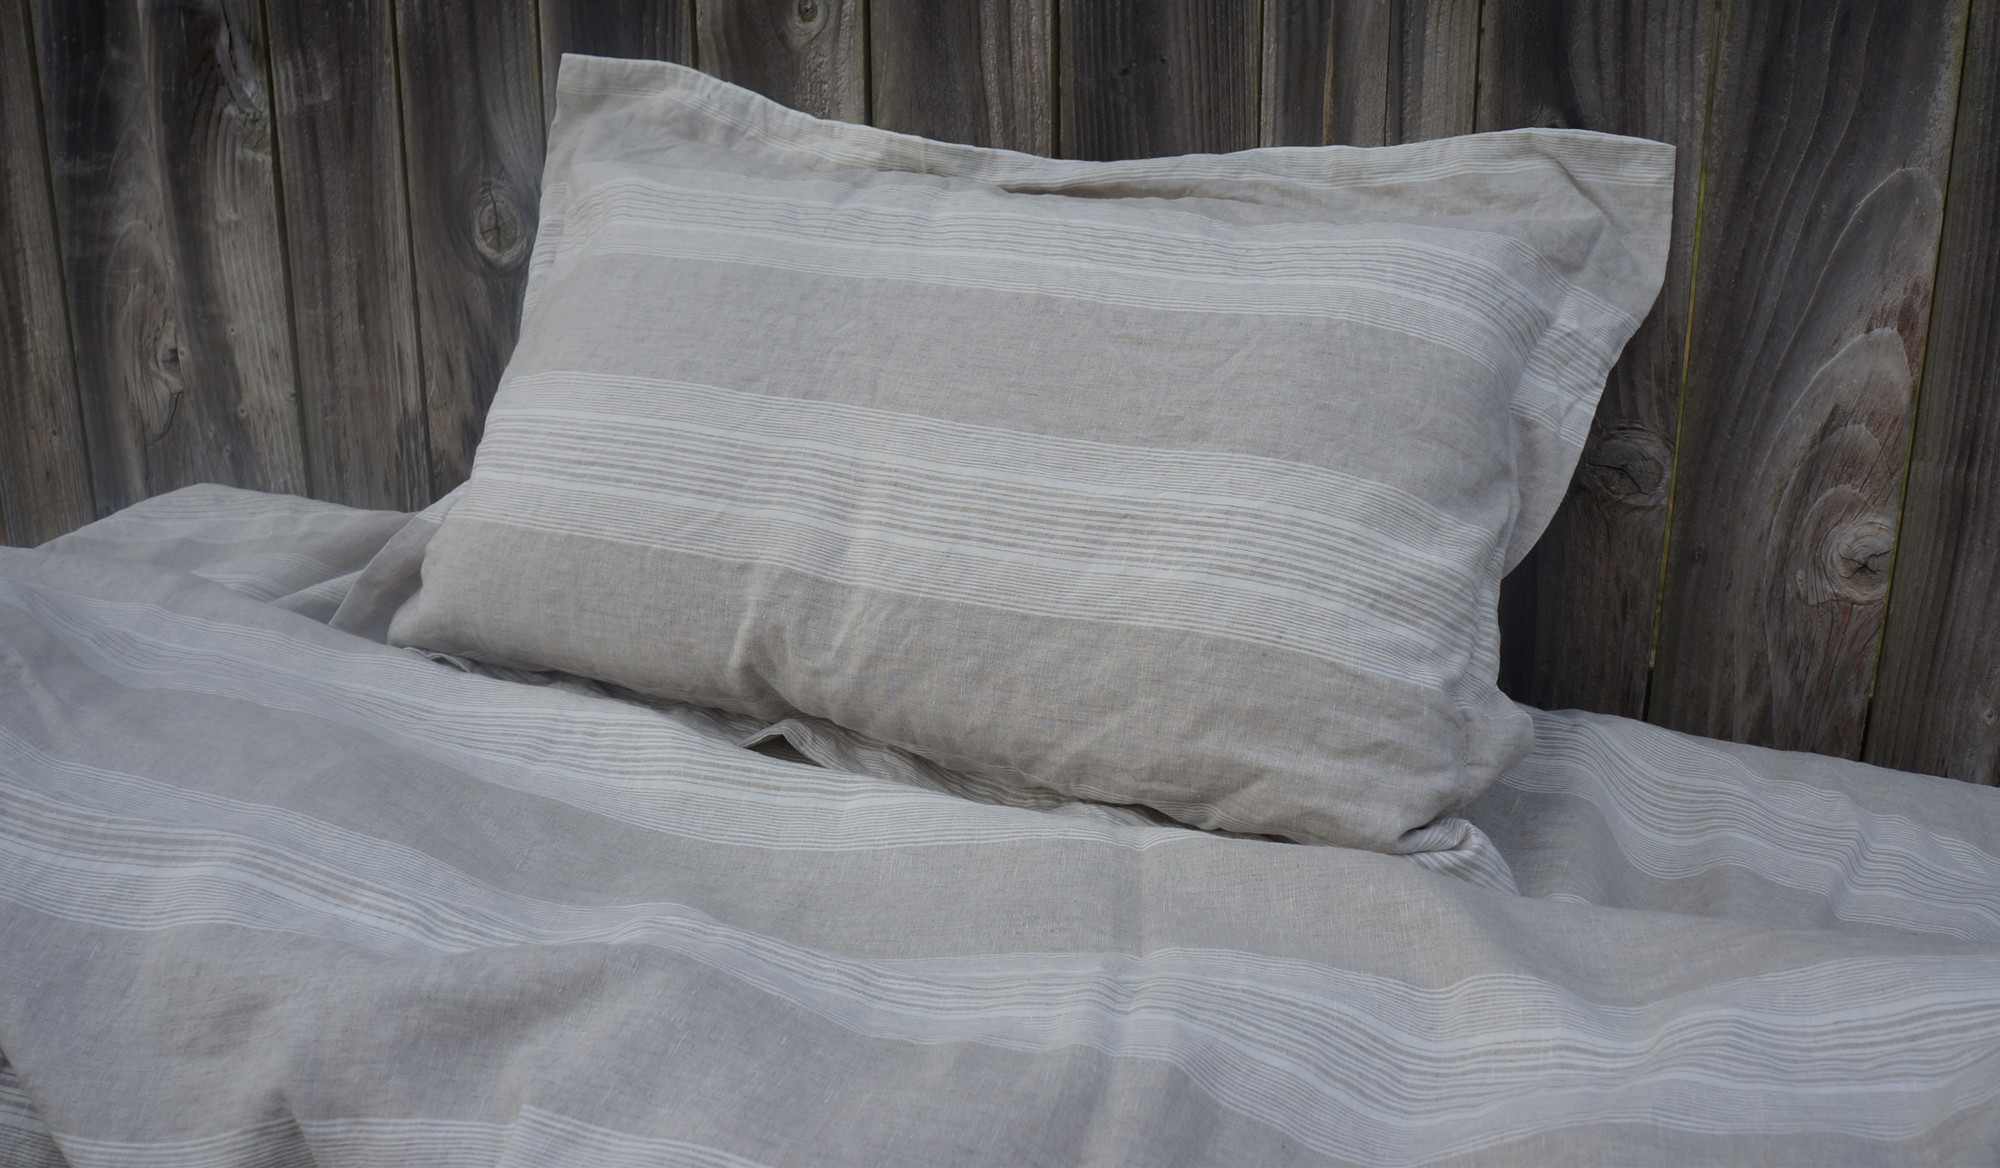 duvet covers white bedding comforter taupe along striped cover style plus stripe with ticking pc size also stupendous navy rc posh custom mutable linen